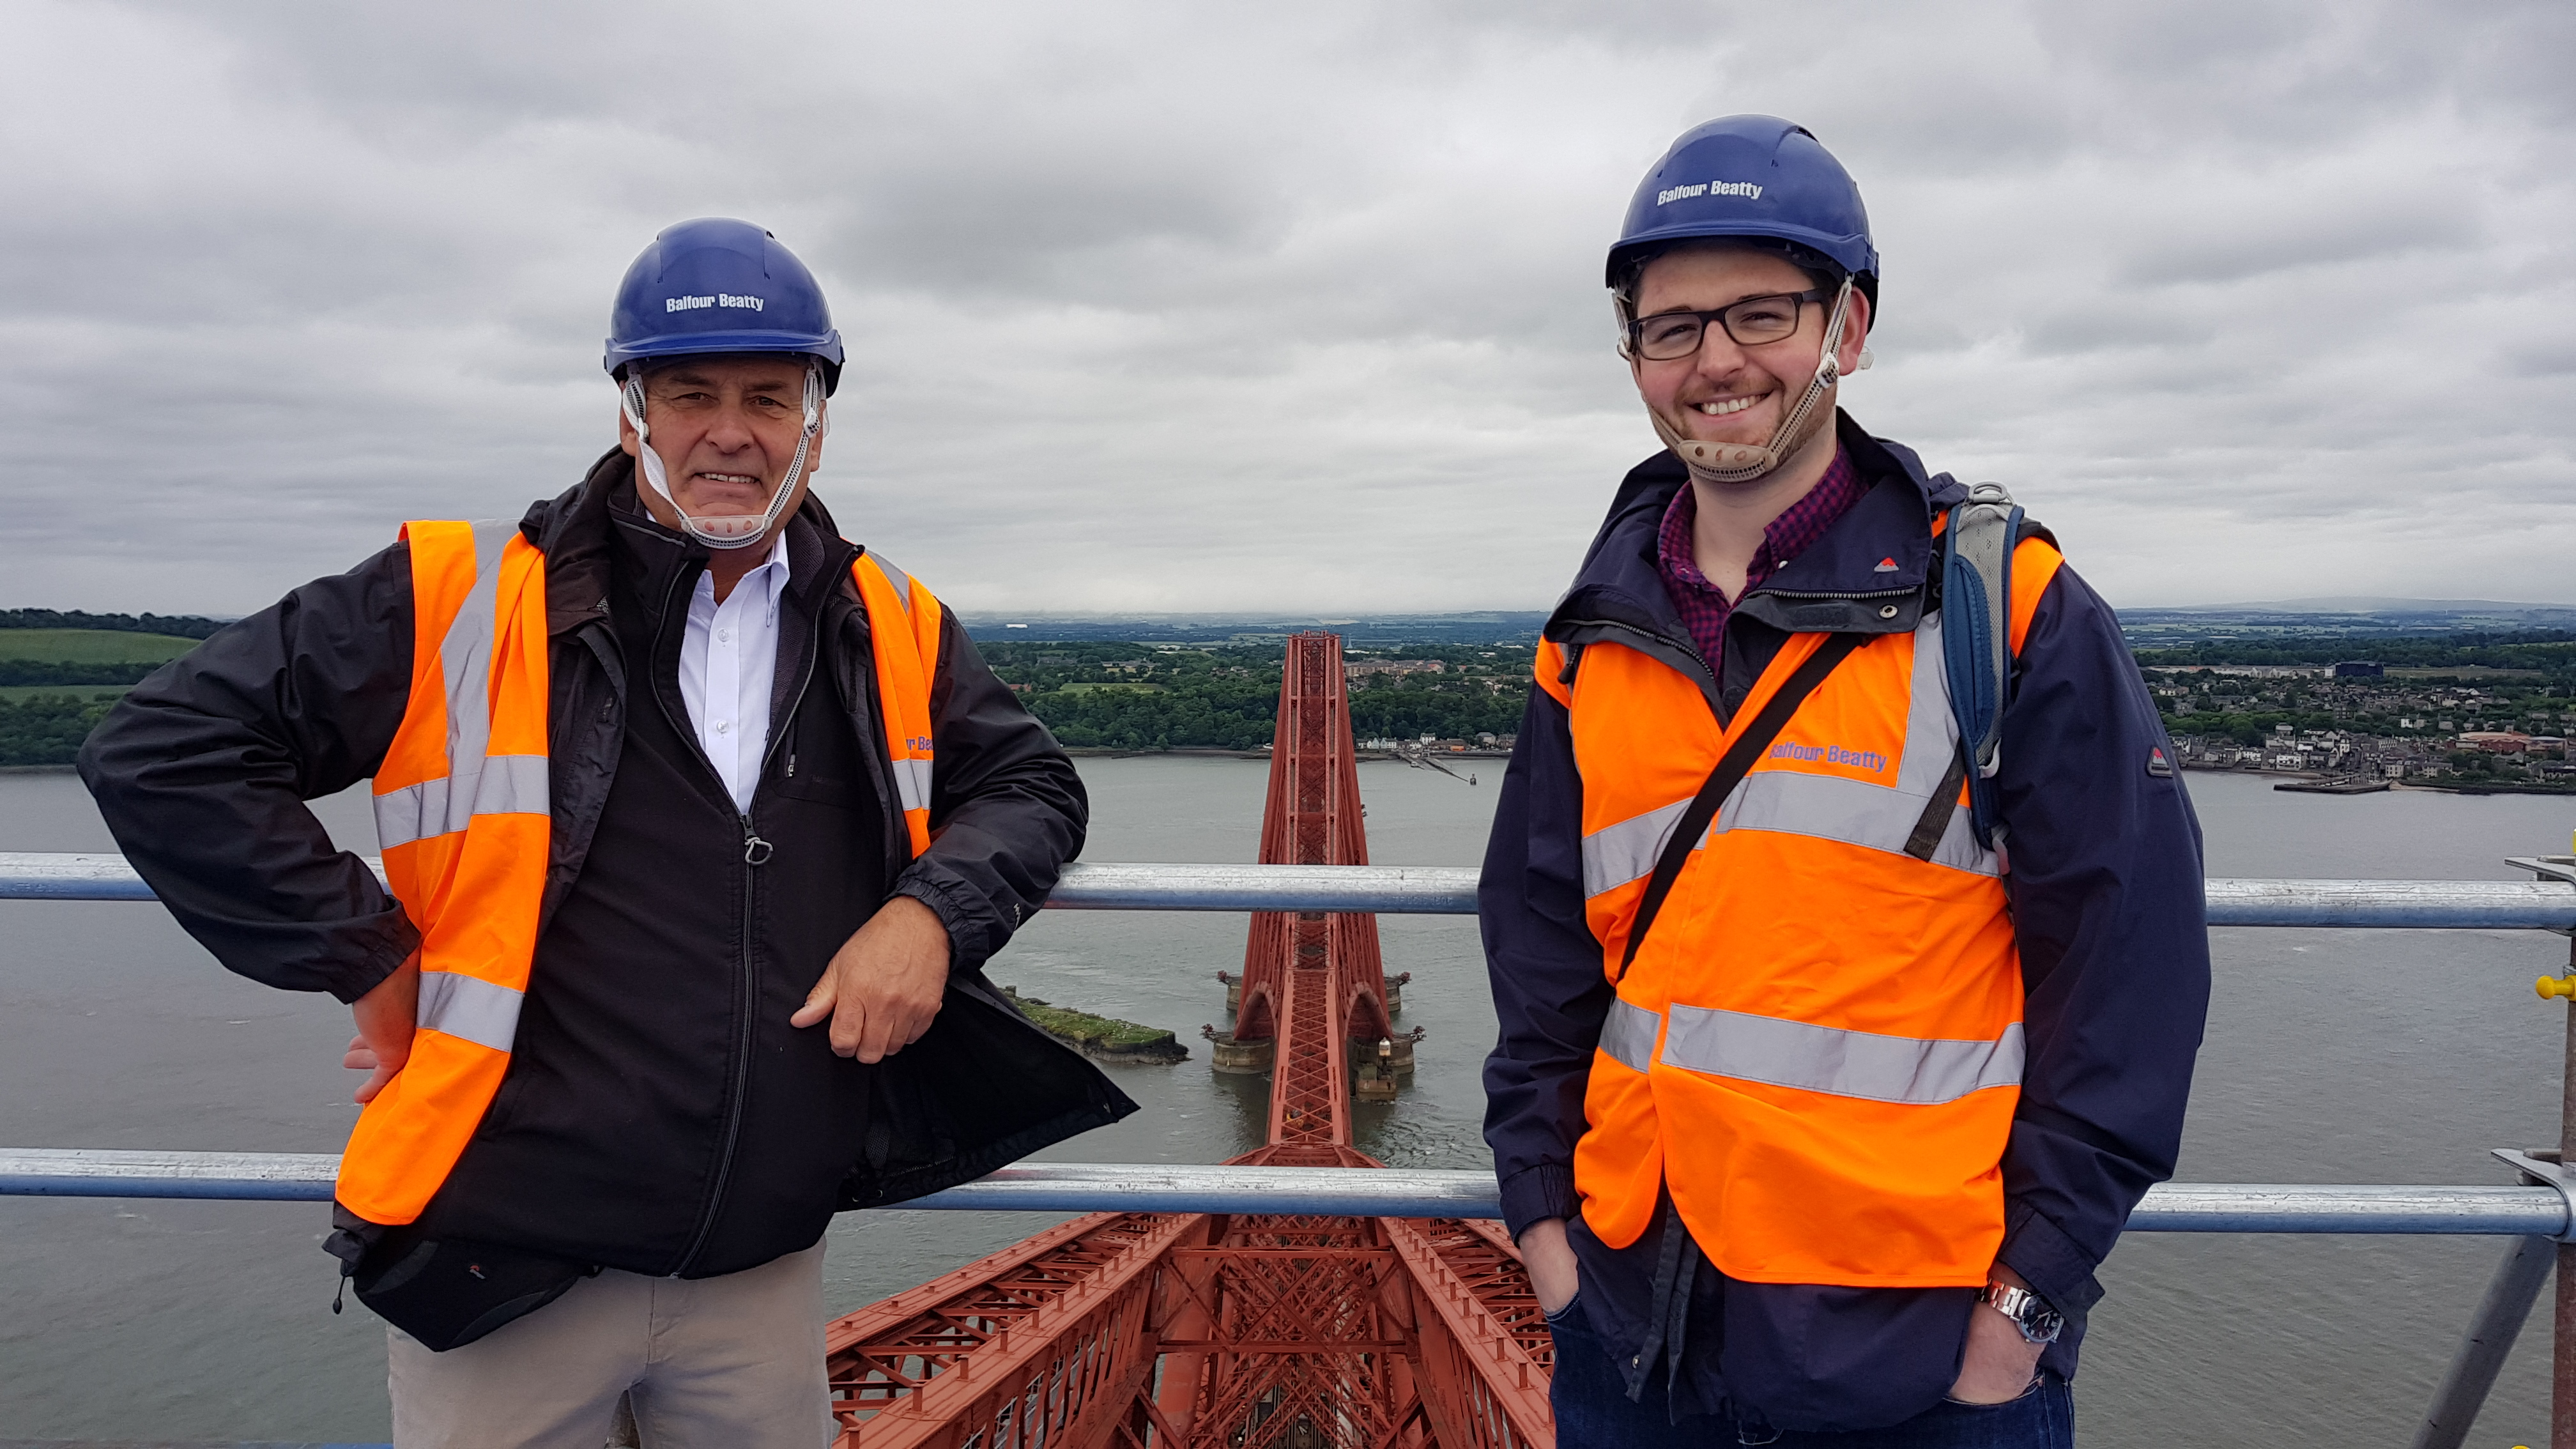 Francis Taylor and Charlie Waite on top of the Forth Bridge